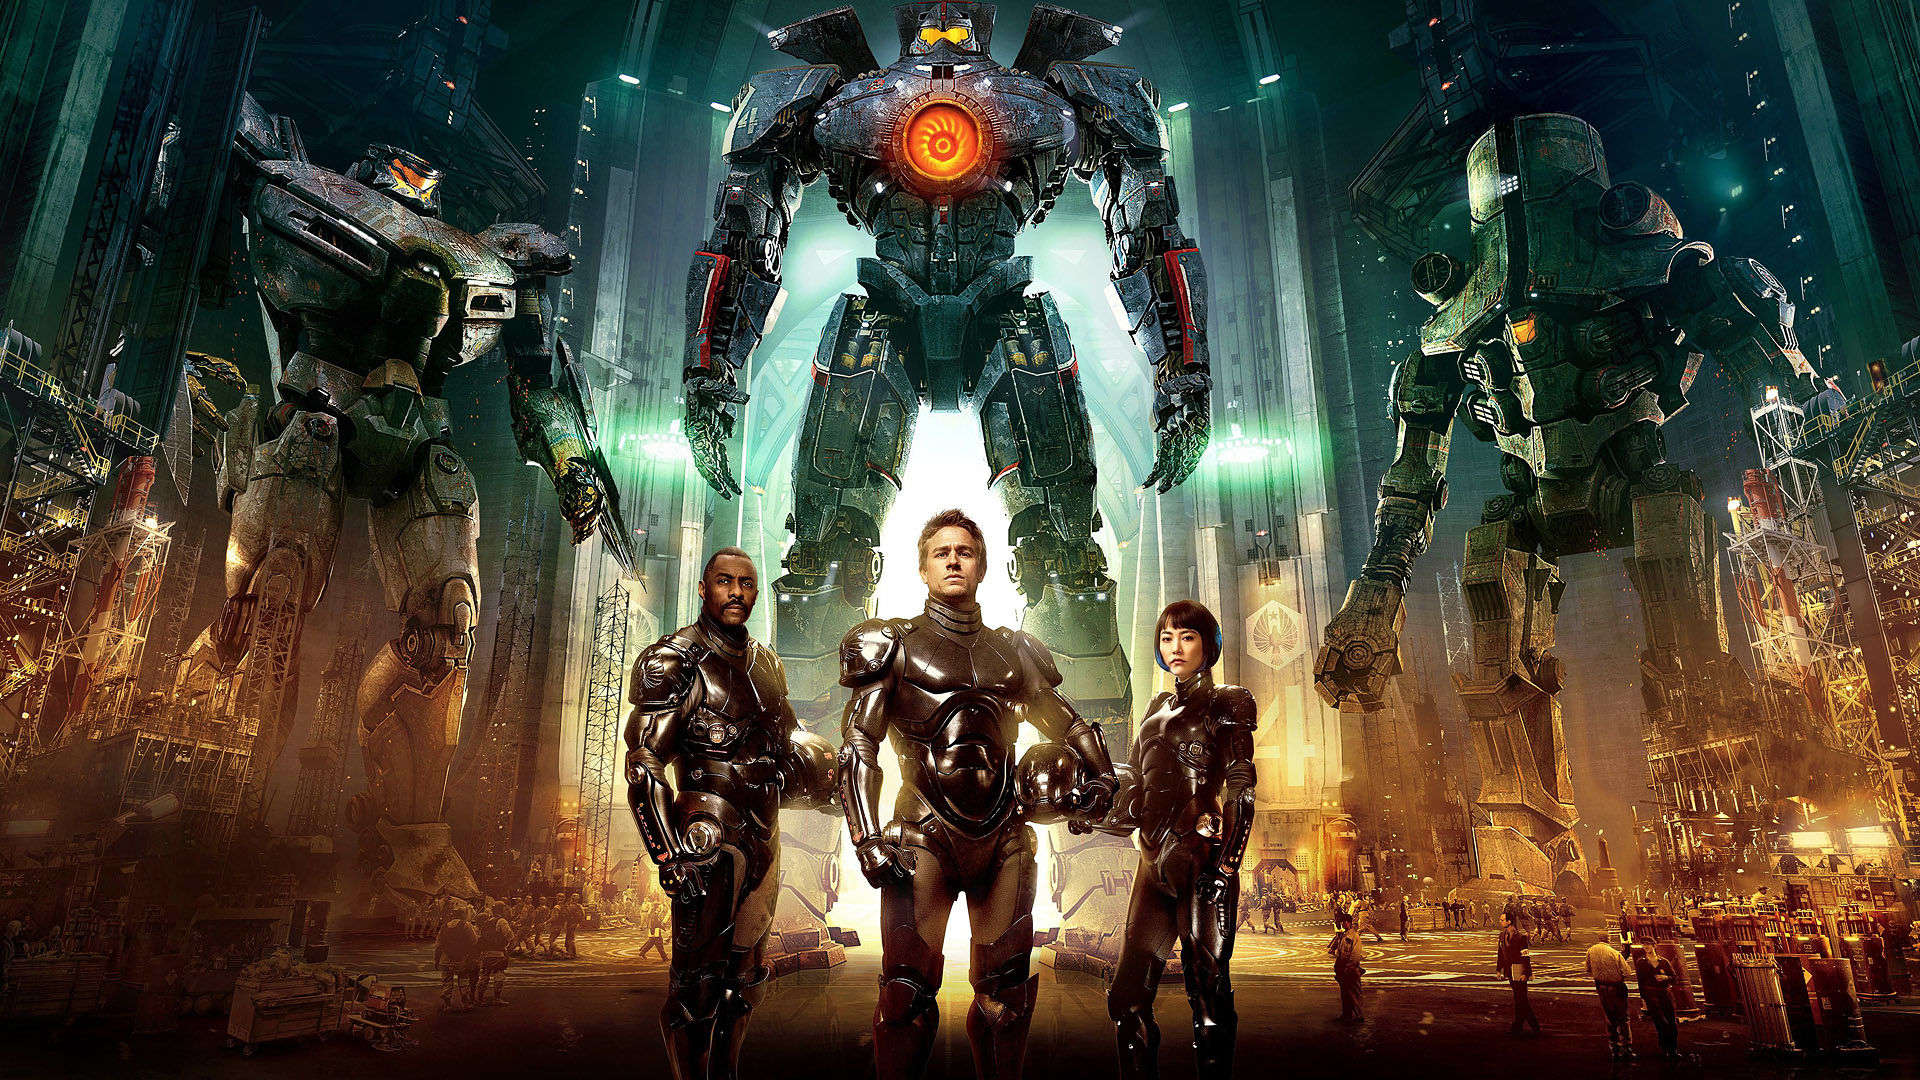 pacific-rim-2-what-lurks-on-the-other-side-of-the-drift-what-new-robots-will-we-see-in-498008